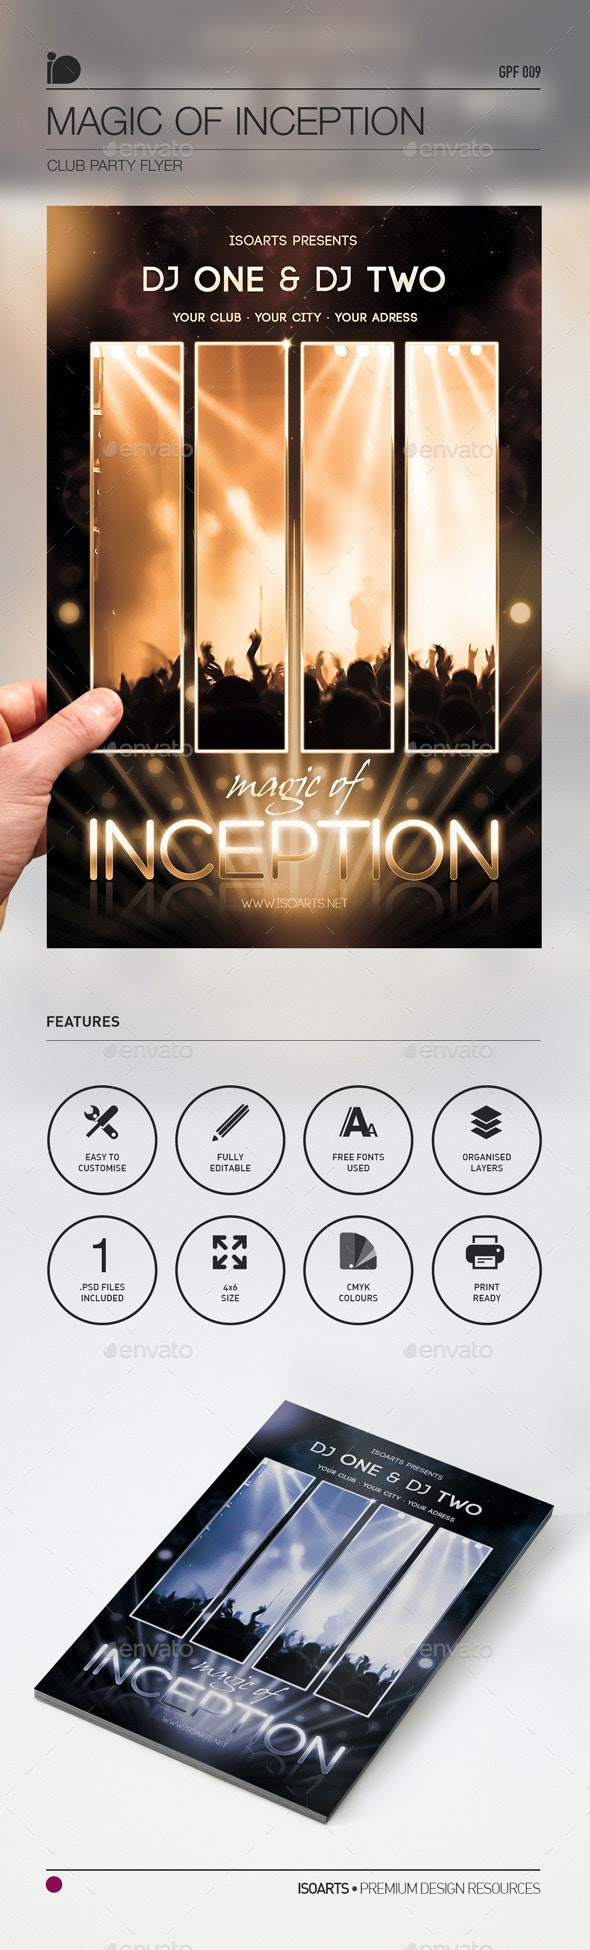 Club Party Flyer • Magic Of Inception - Clubs & Parties Events